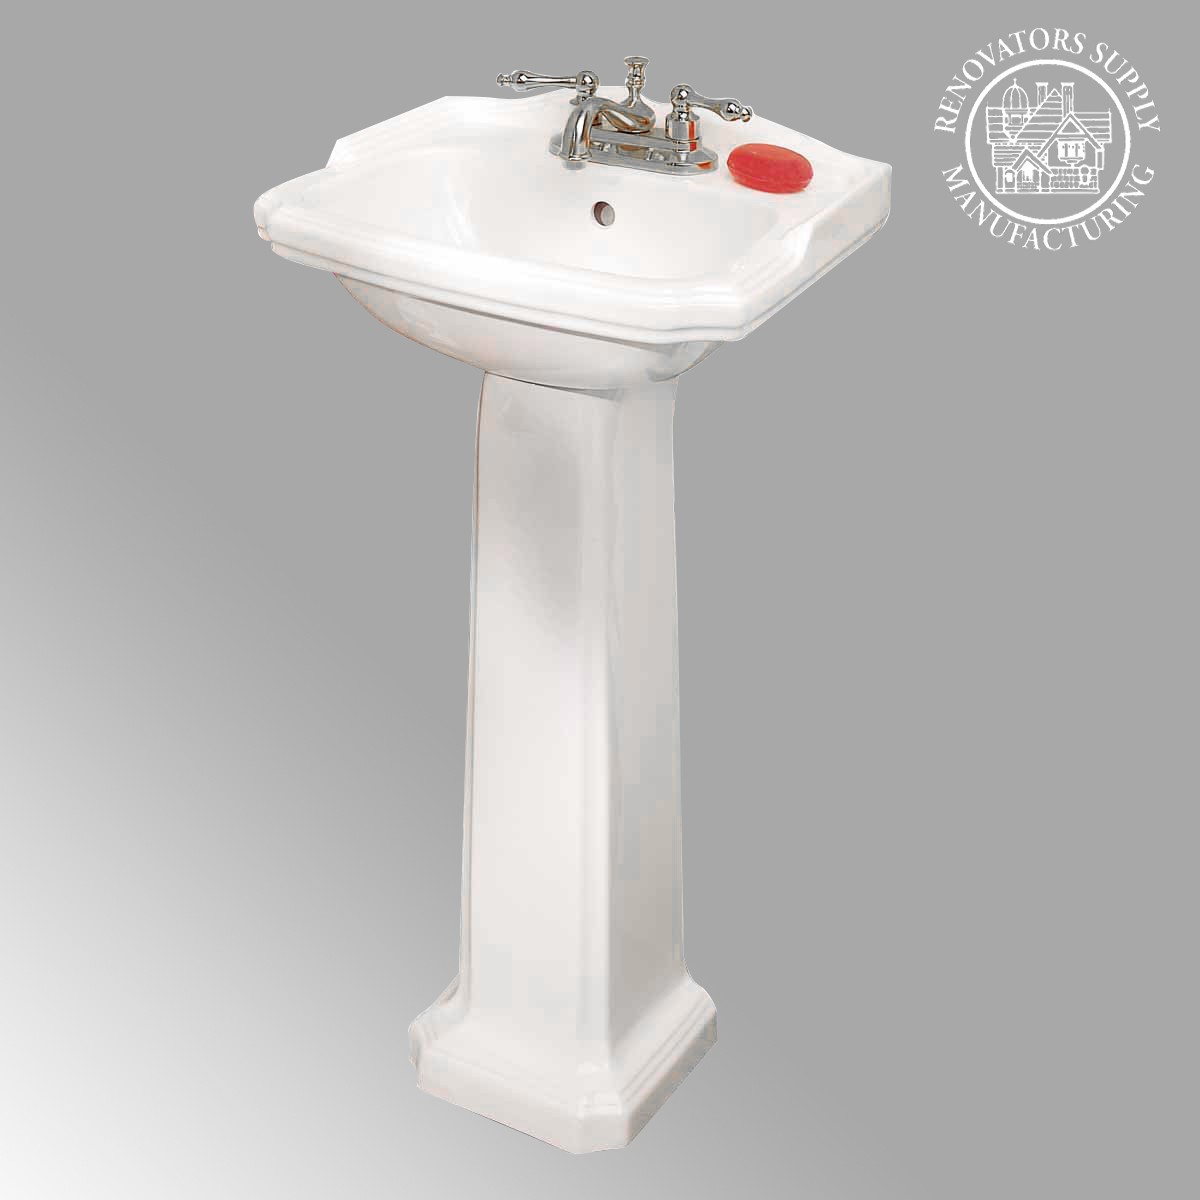 pedestal bathroom sinks com barclay h sink pl vitreous in at lowes shop china hartford white